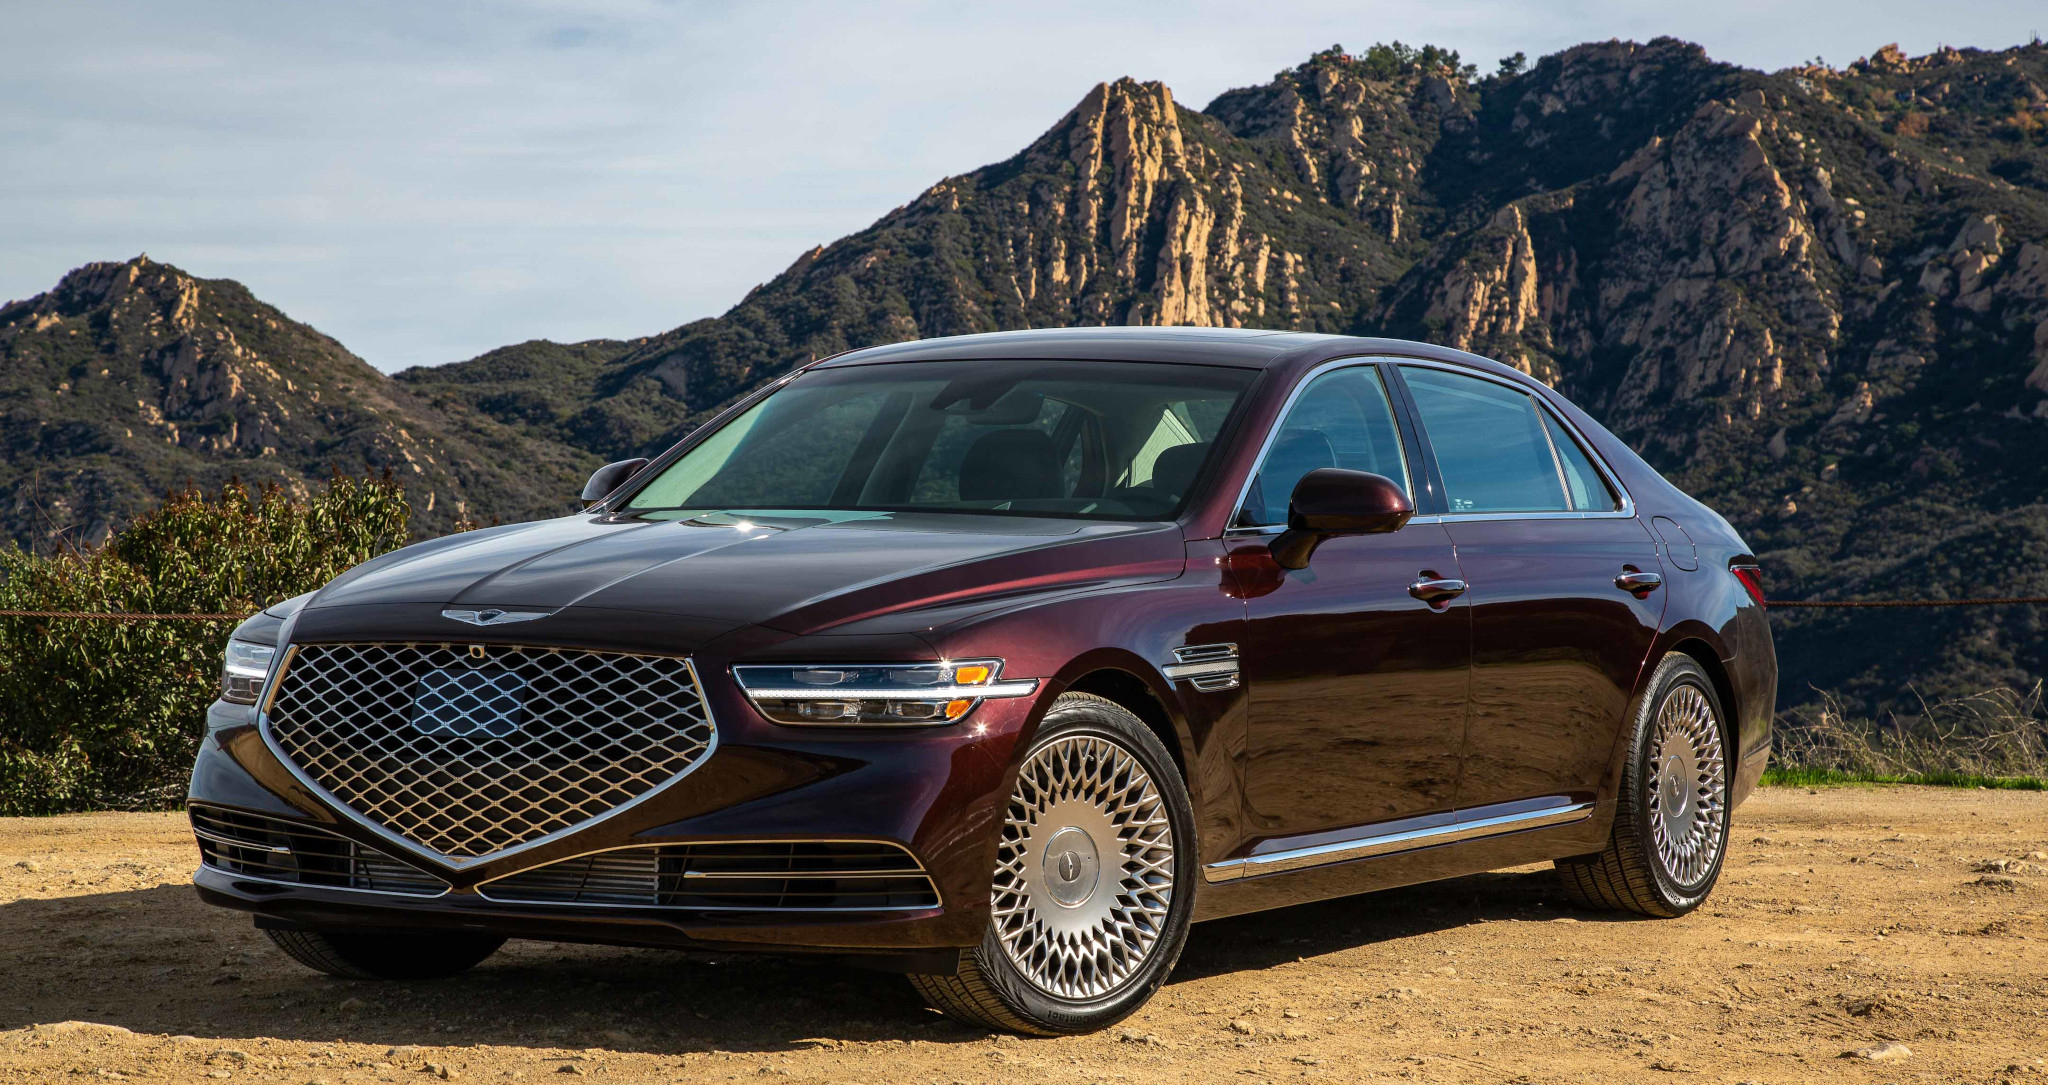 genesis-g90-33t-2020-03-angle-brown-exterior-front-red.jpg